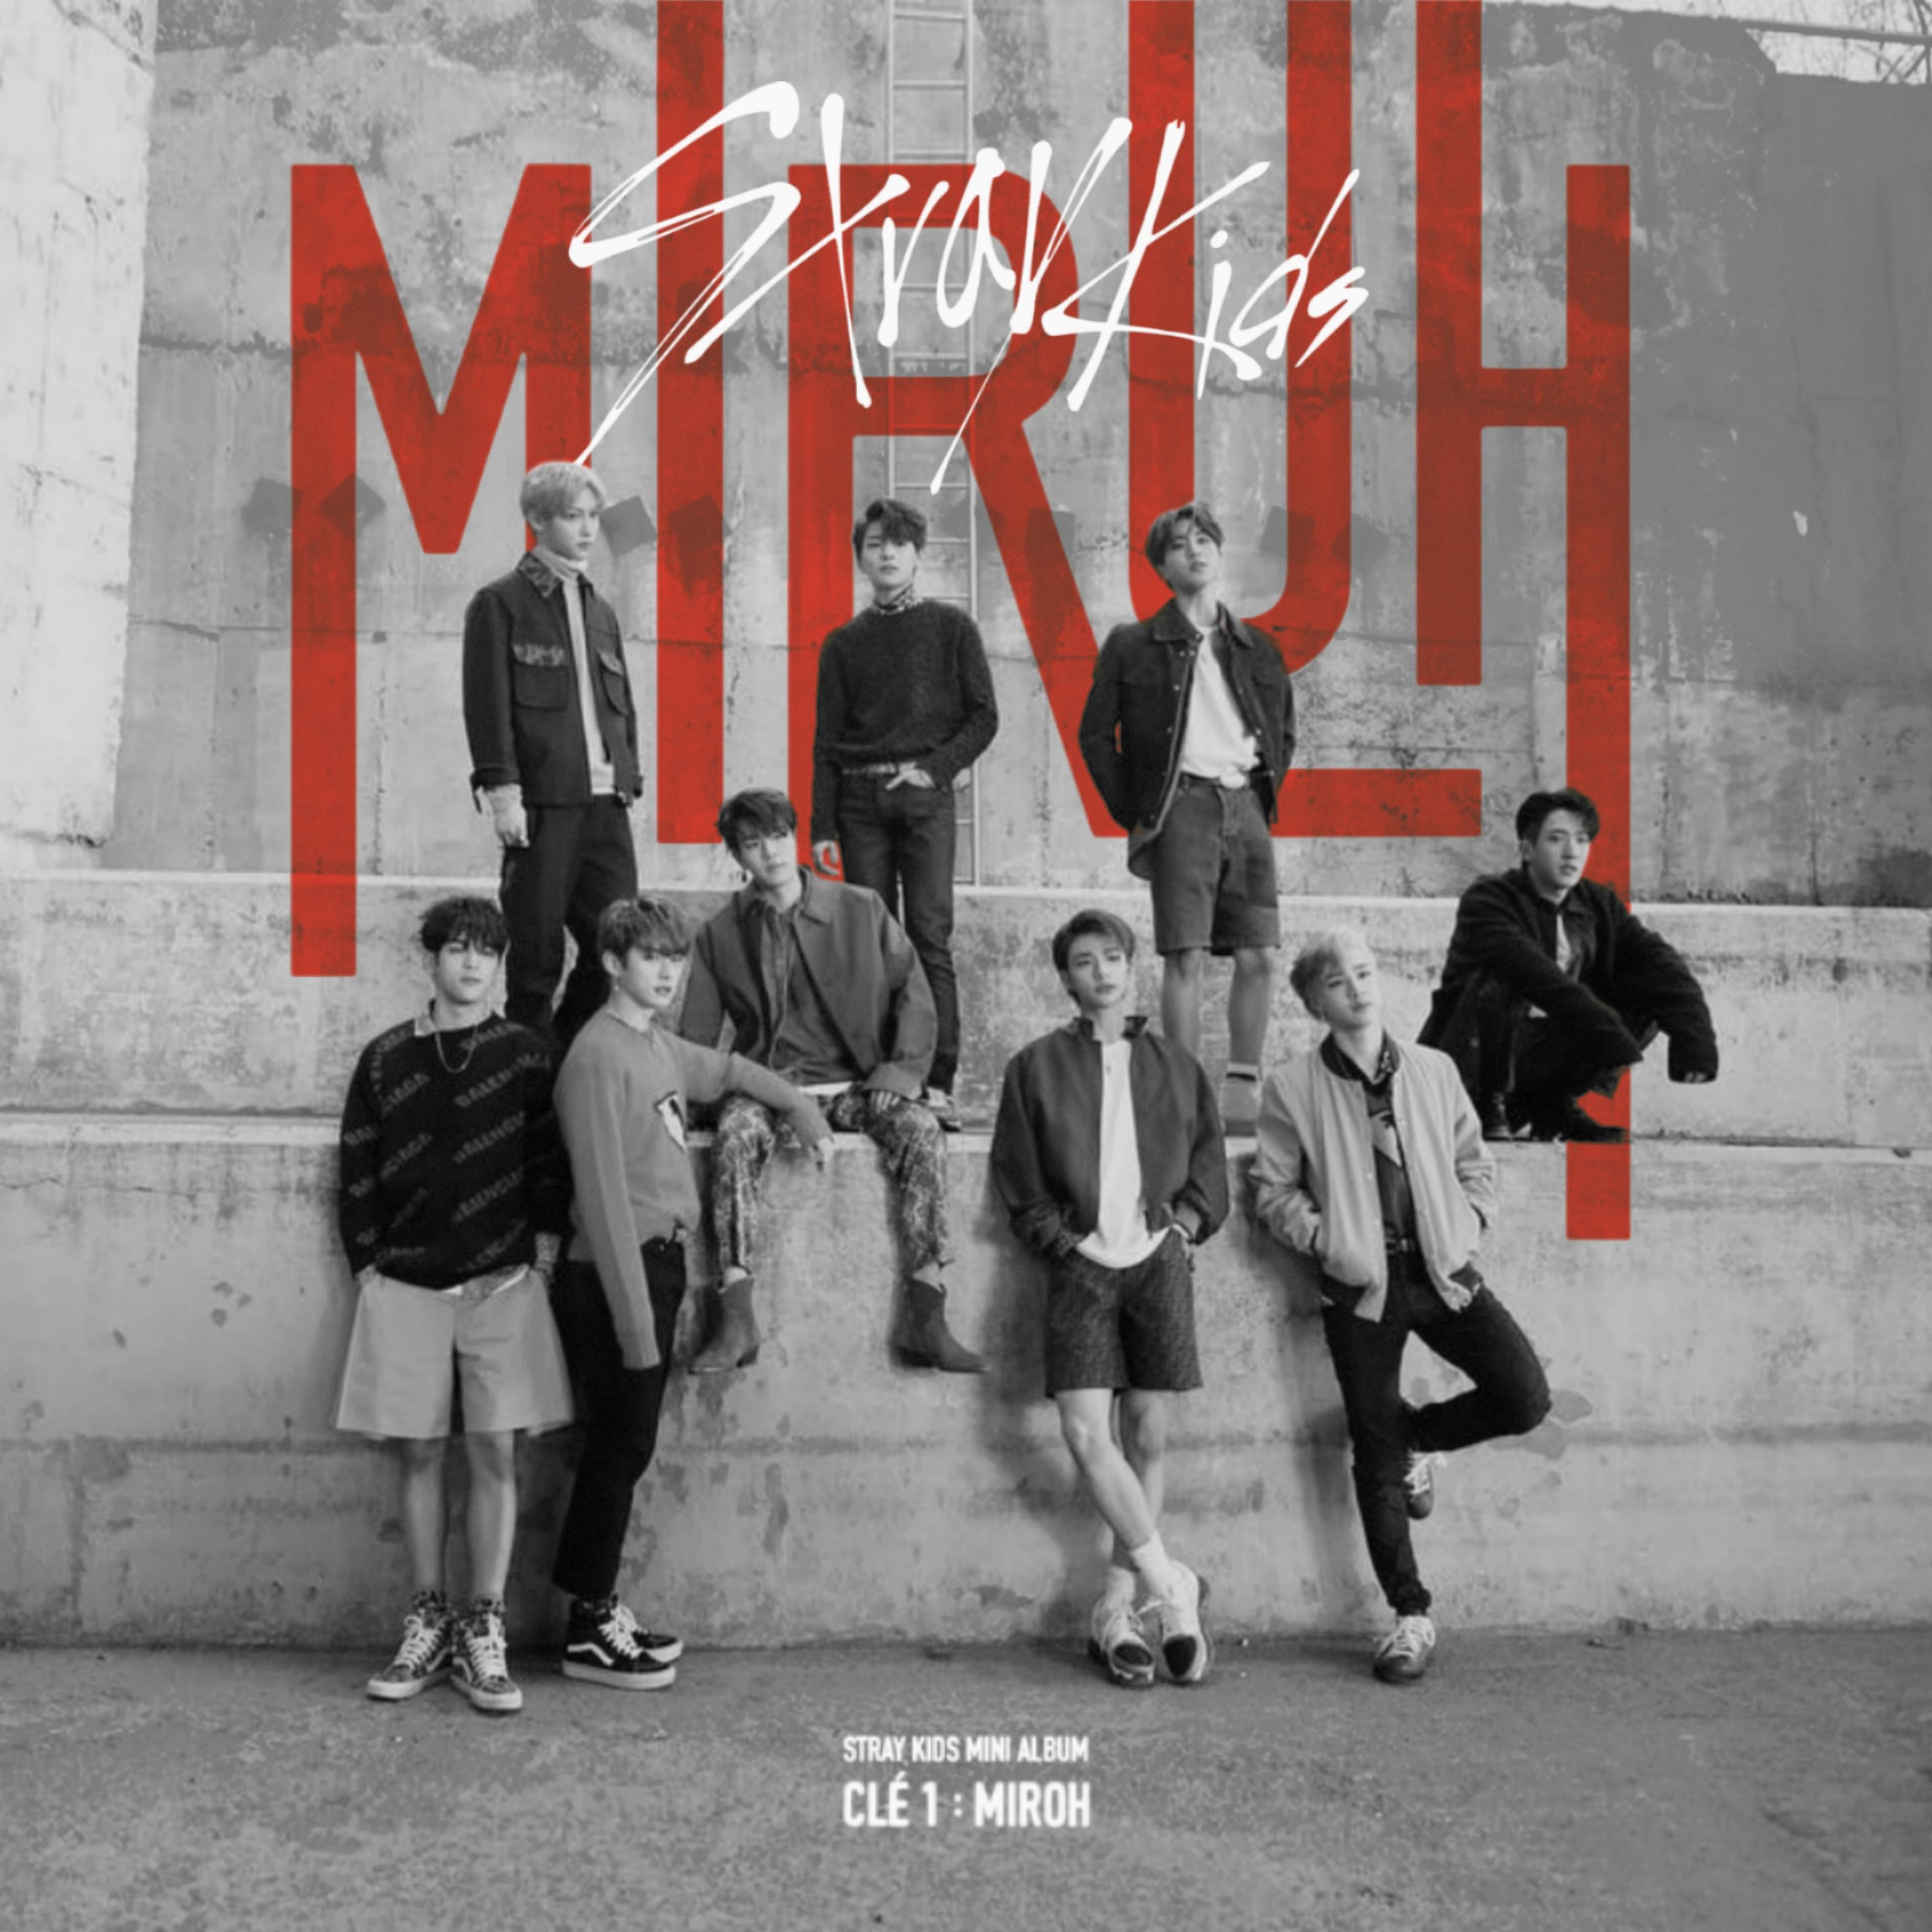 STRAY KIDS CLE 1 : MIROH album cover by LEAlbum on DeviantArt